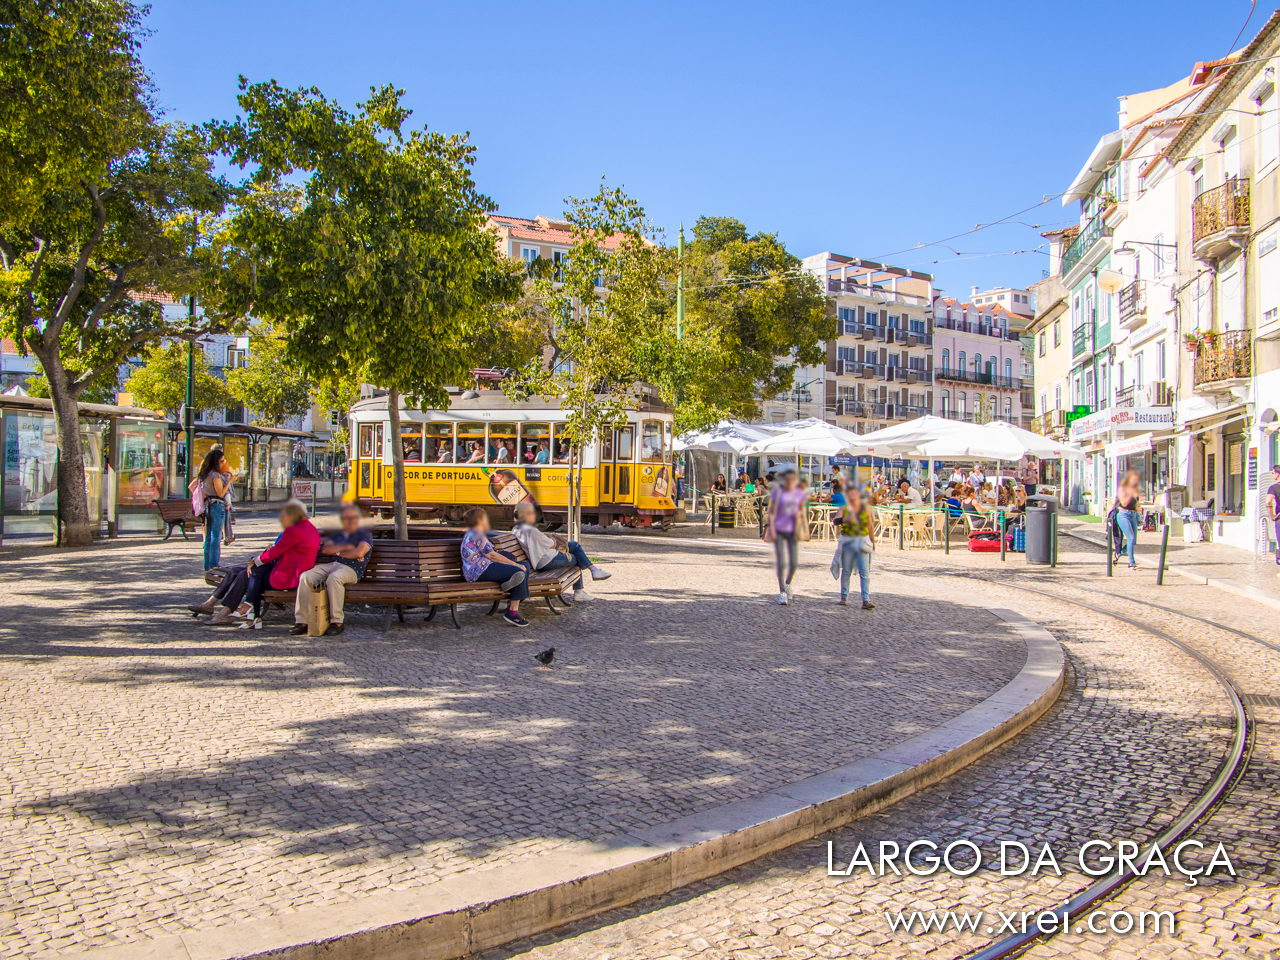 Largo da Graça is one of the busiest streets in Bairro da Graça during the day, with the constant movement of Lisbon trams (trams), tuck tucks and taxis, tourists, neighborhood residents and firefighters, from the two barracks nearby